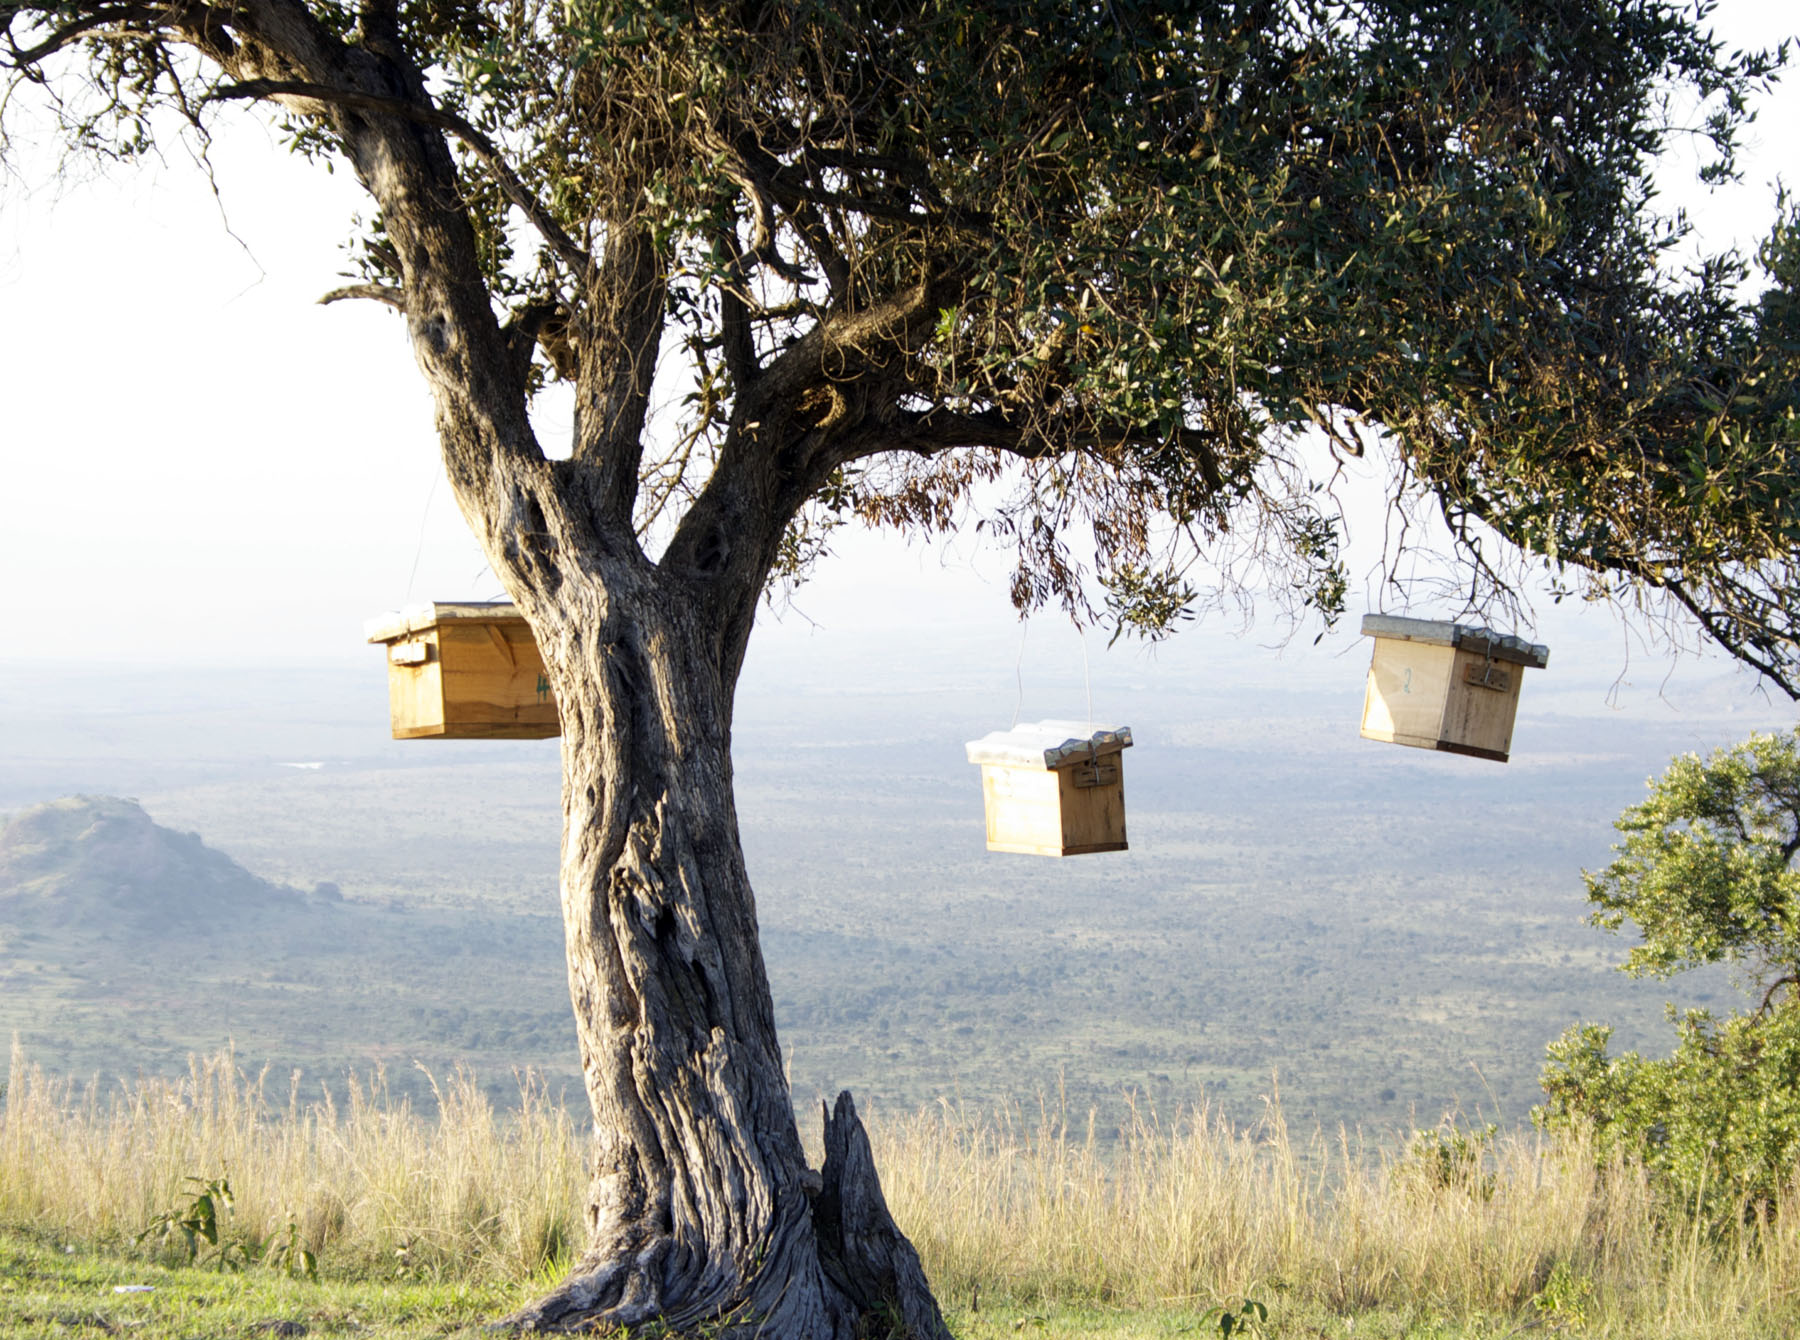 The hives are on the Lolldaiga Ranch. The photo shows catcher boxes waiting for the migrating bees during the flowering season.